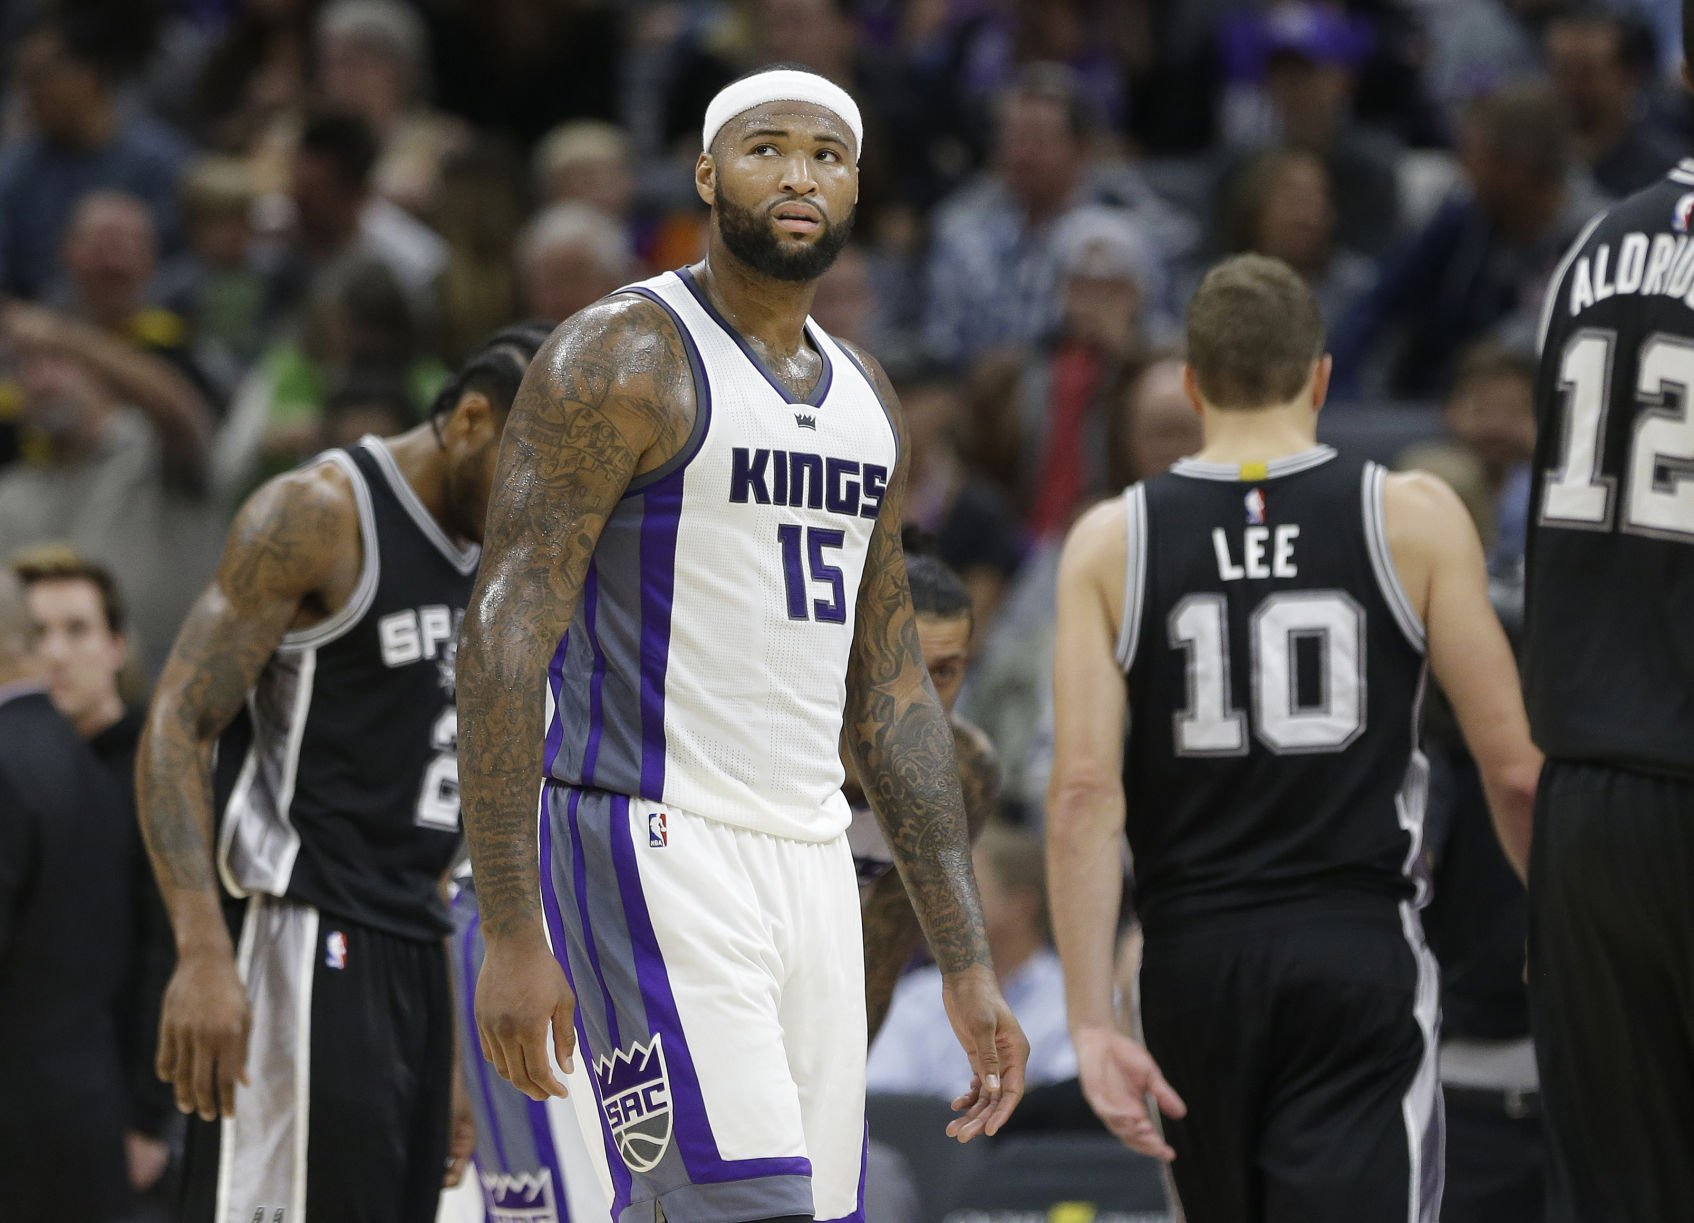 Game between Kings and 76ers postponed due to condensation